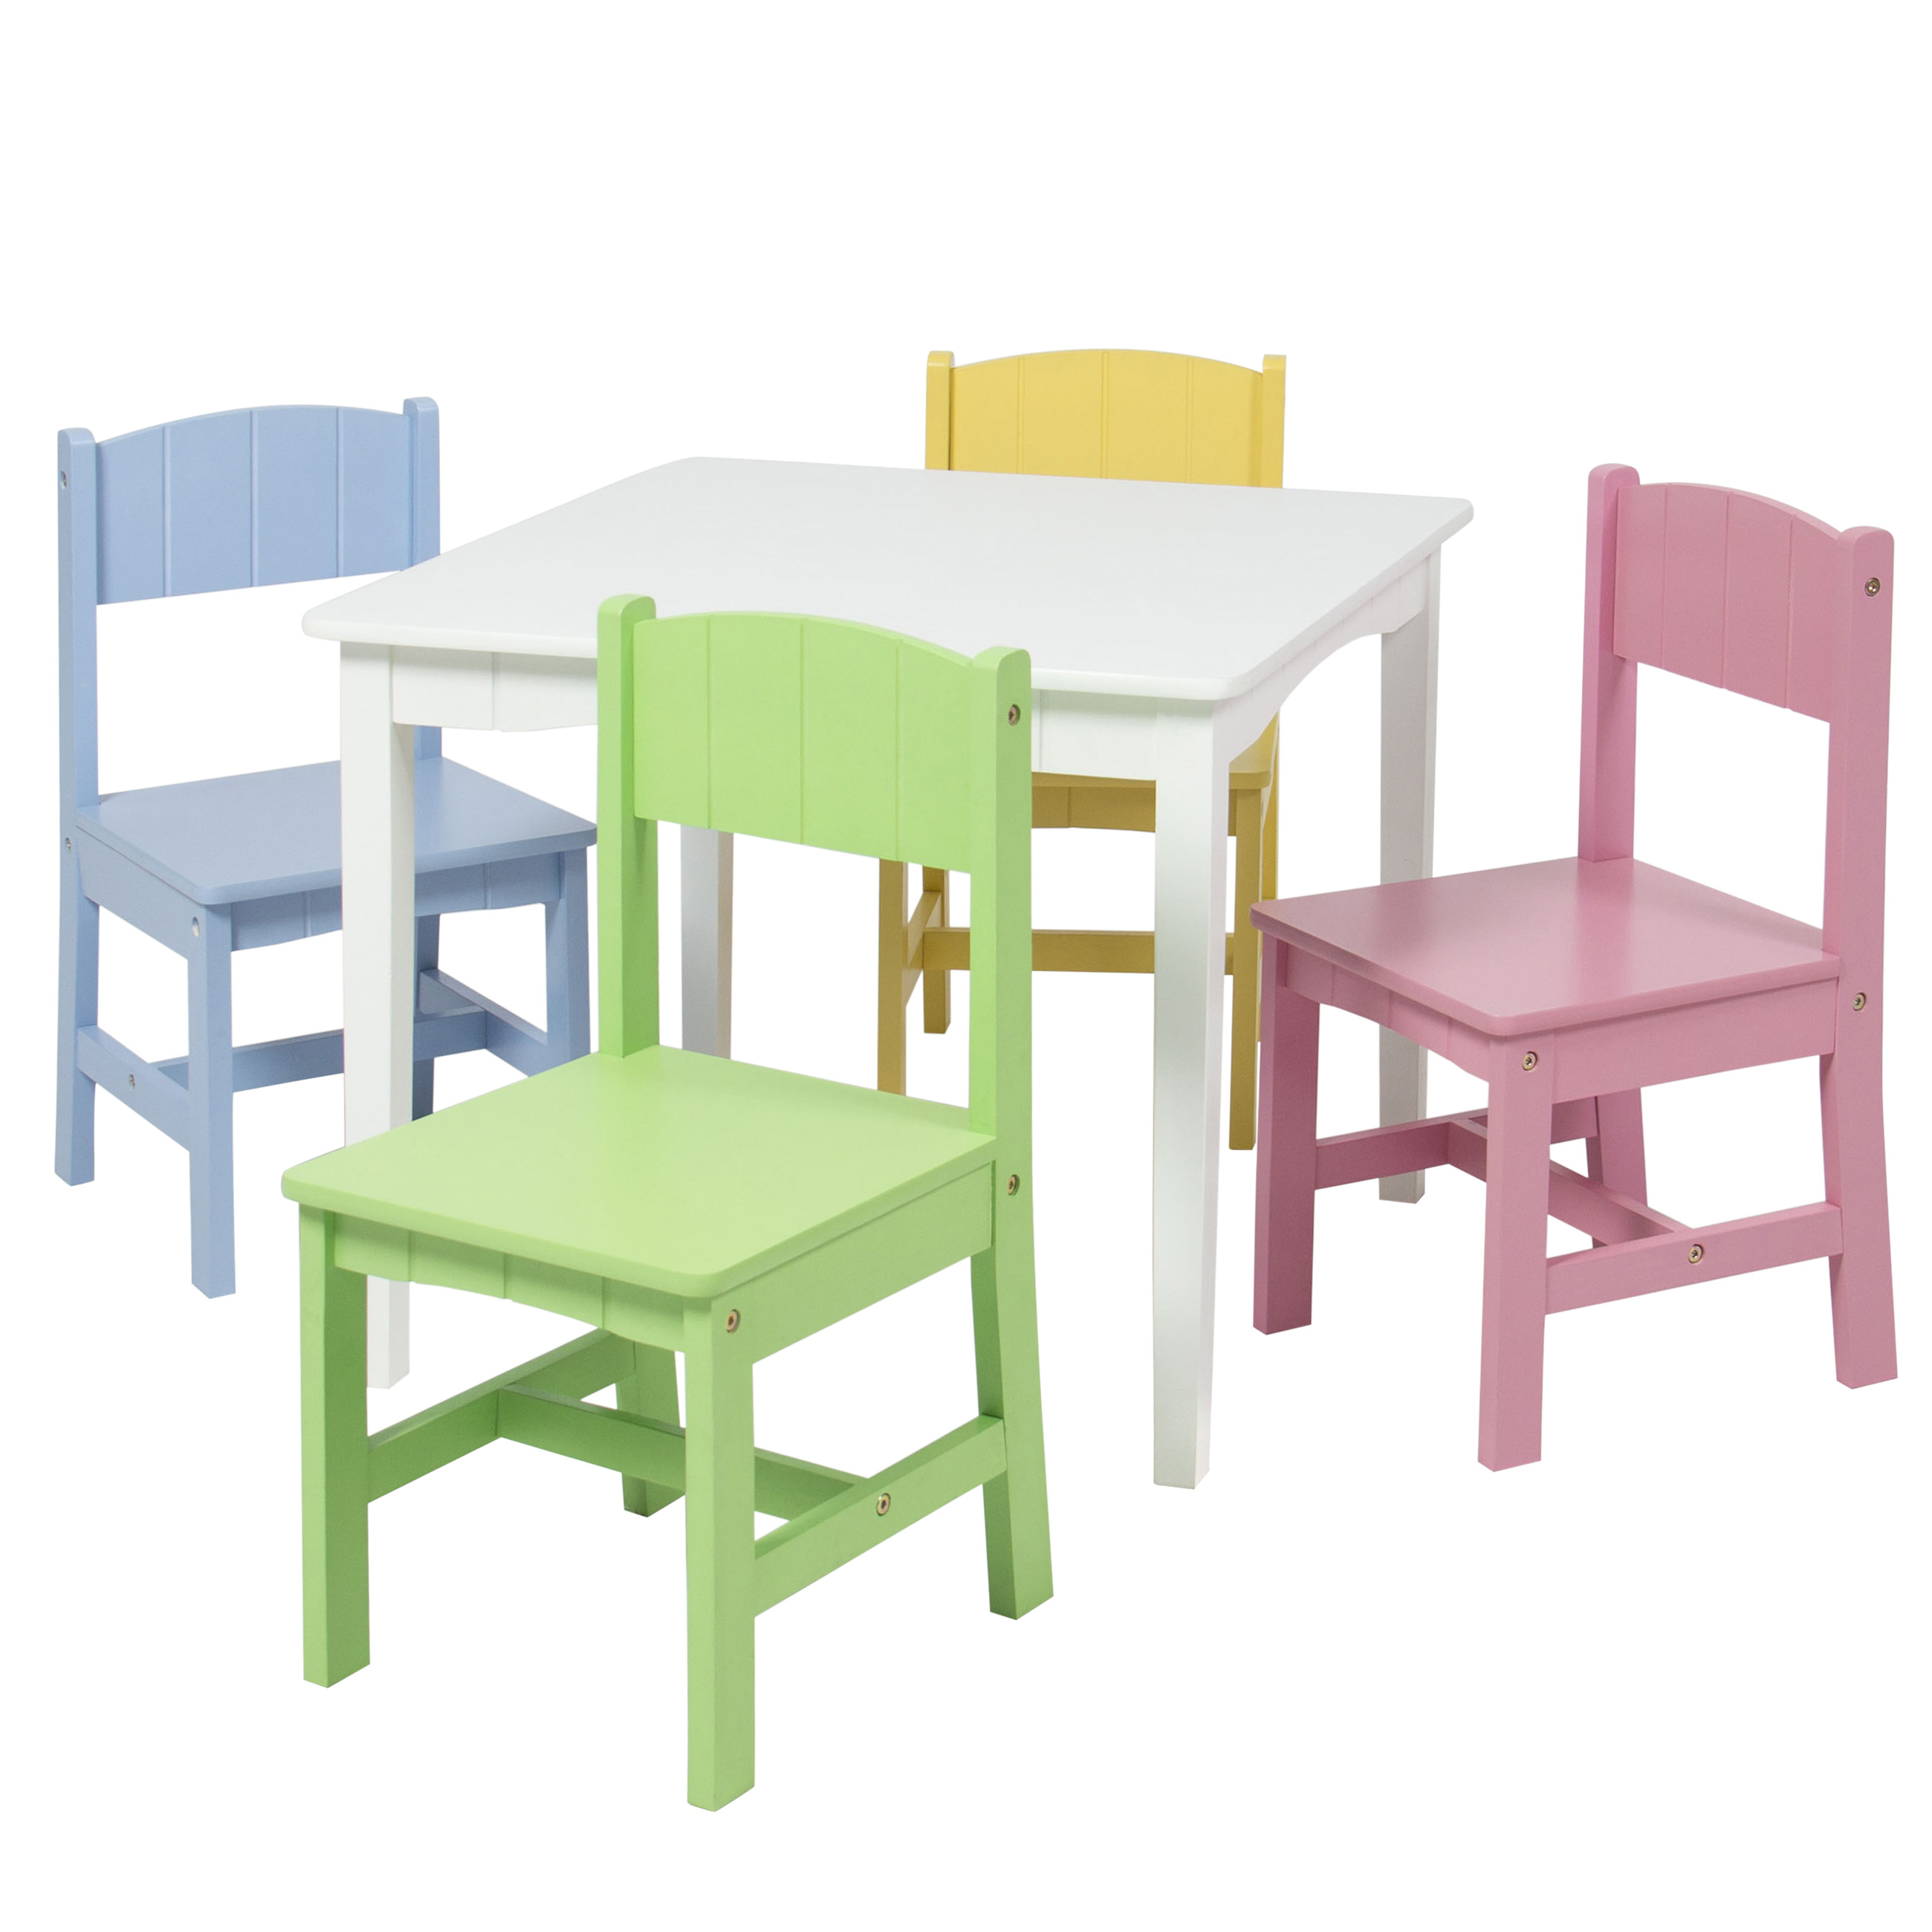 Wooden kids table and 4 chairs set furniture play area school home ebay Wooden childrens furniture